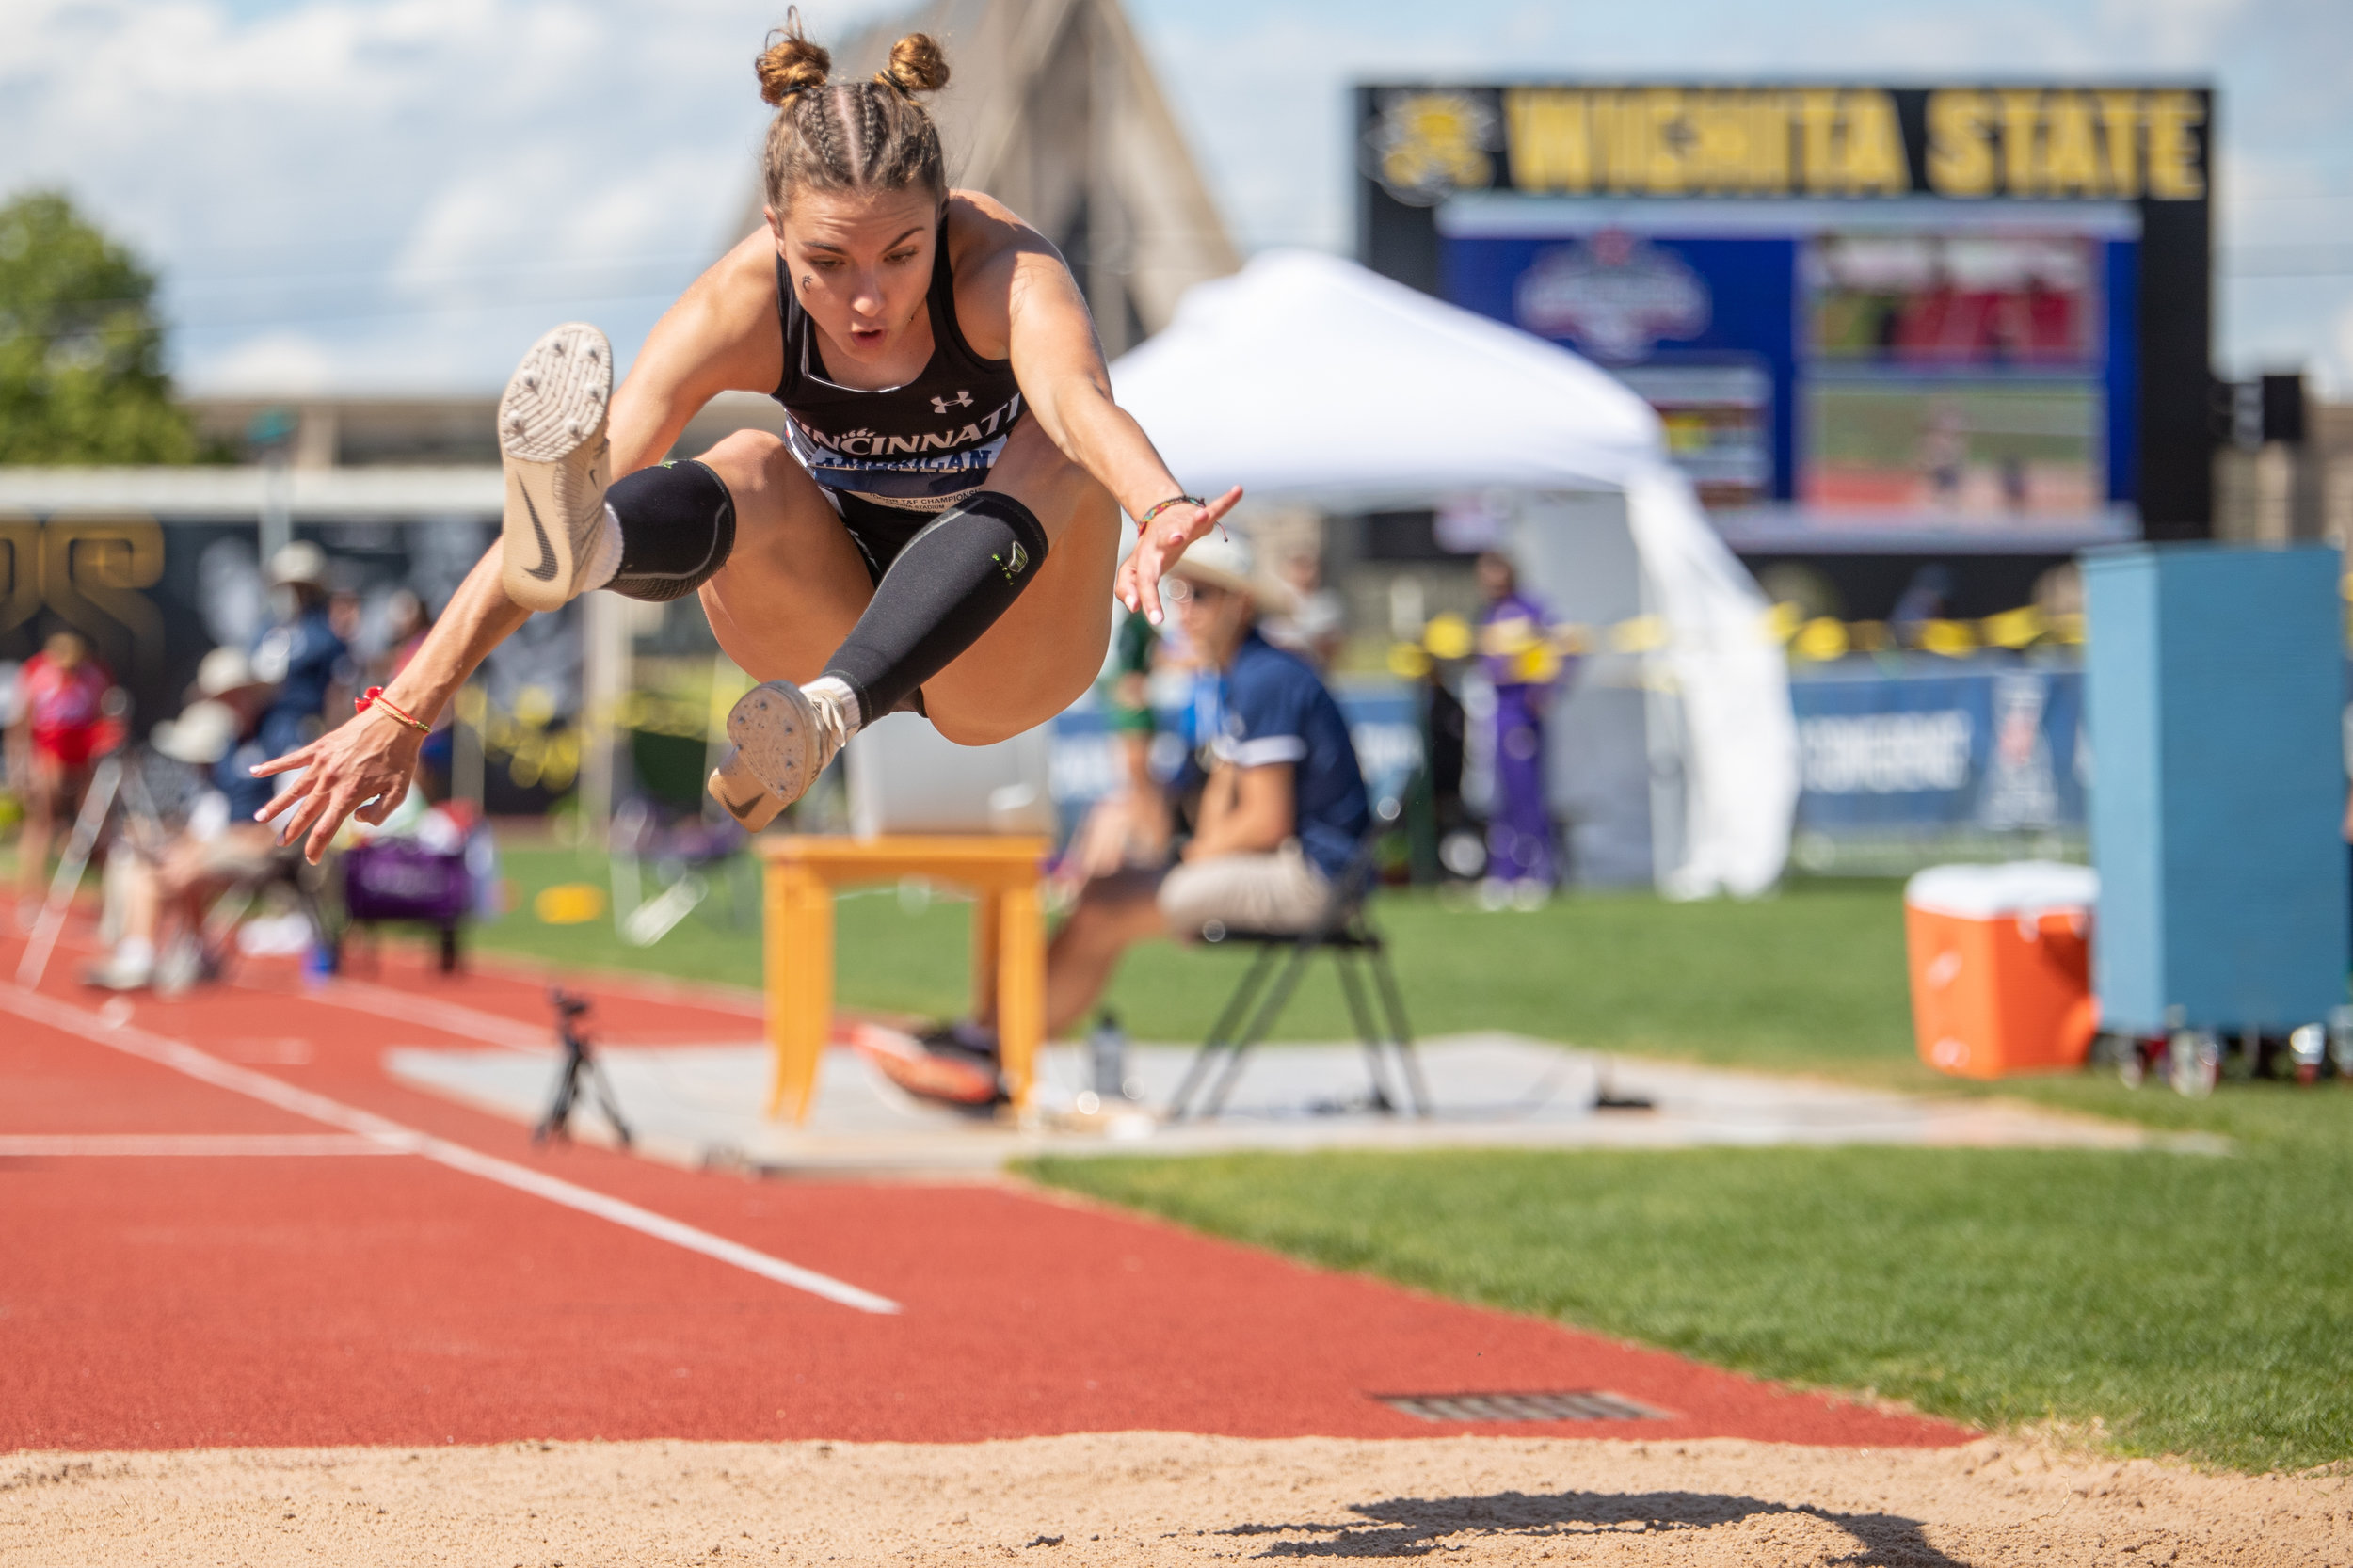 The American Athletic Conference is hosted at Wichita State University. The following photos were taken on the third day of the meet, May 12, 2019. Photos taken for ECU Athletics. Photos are copyrighted by Joseph Barringhaus and should not be distributed or used without prior written consent.